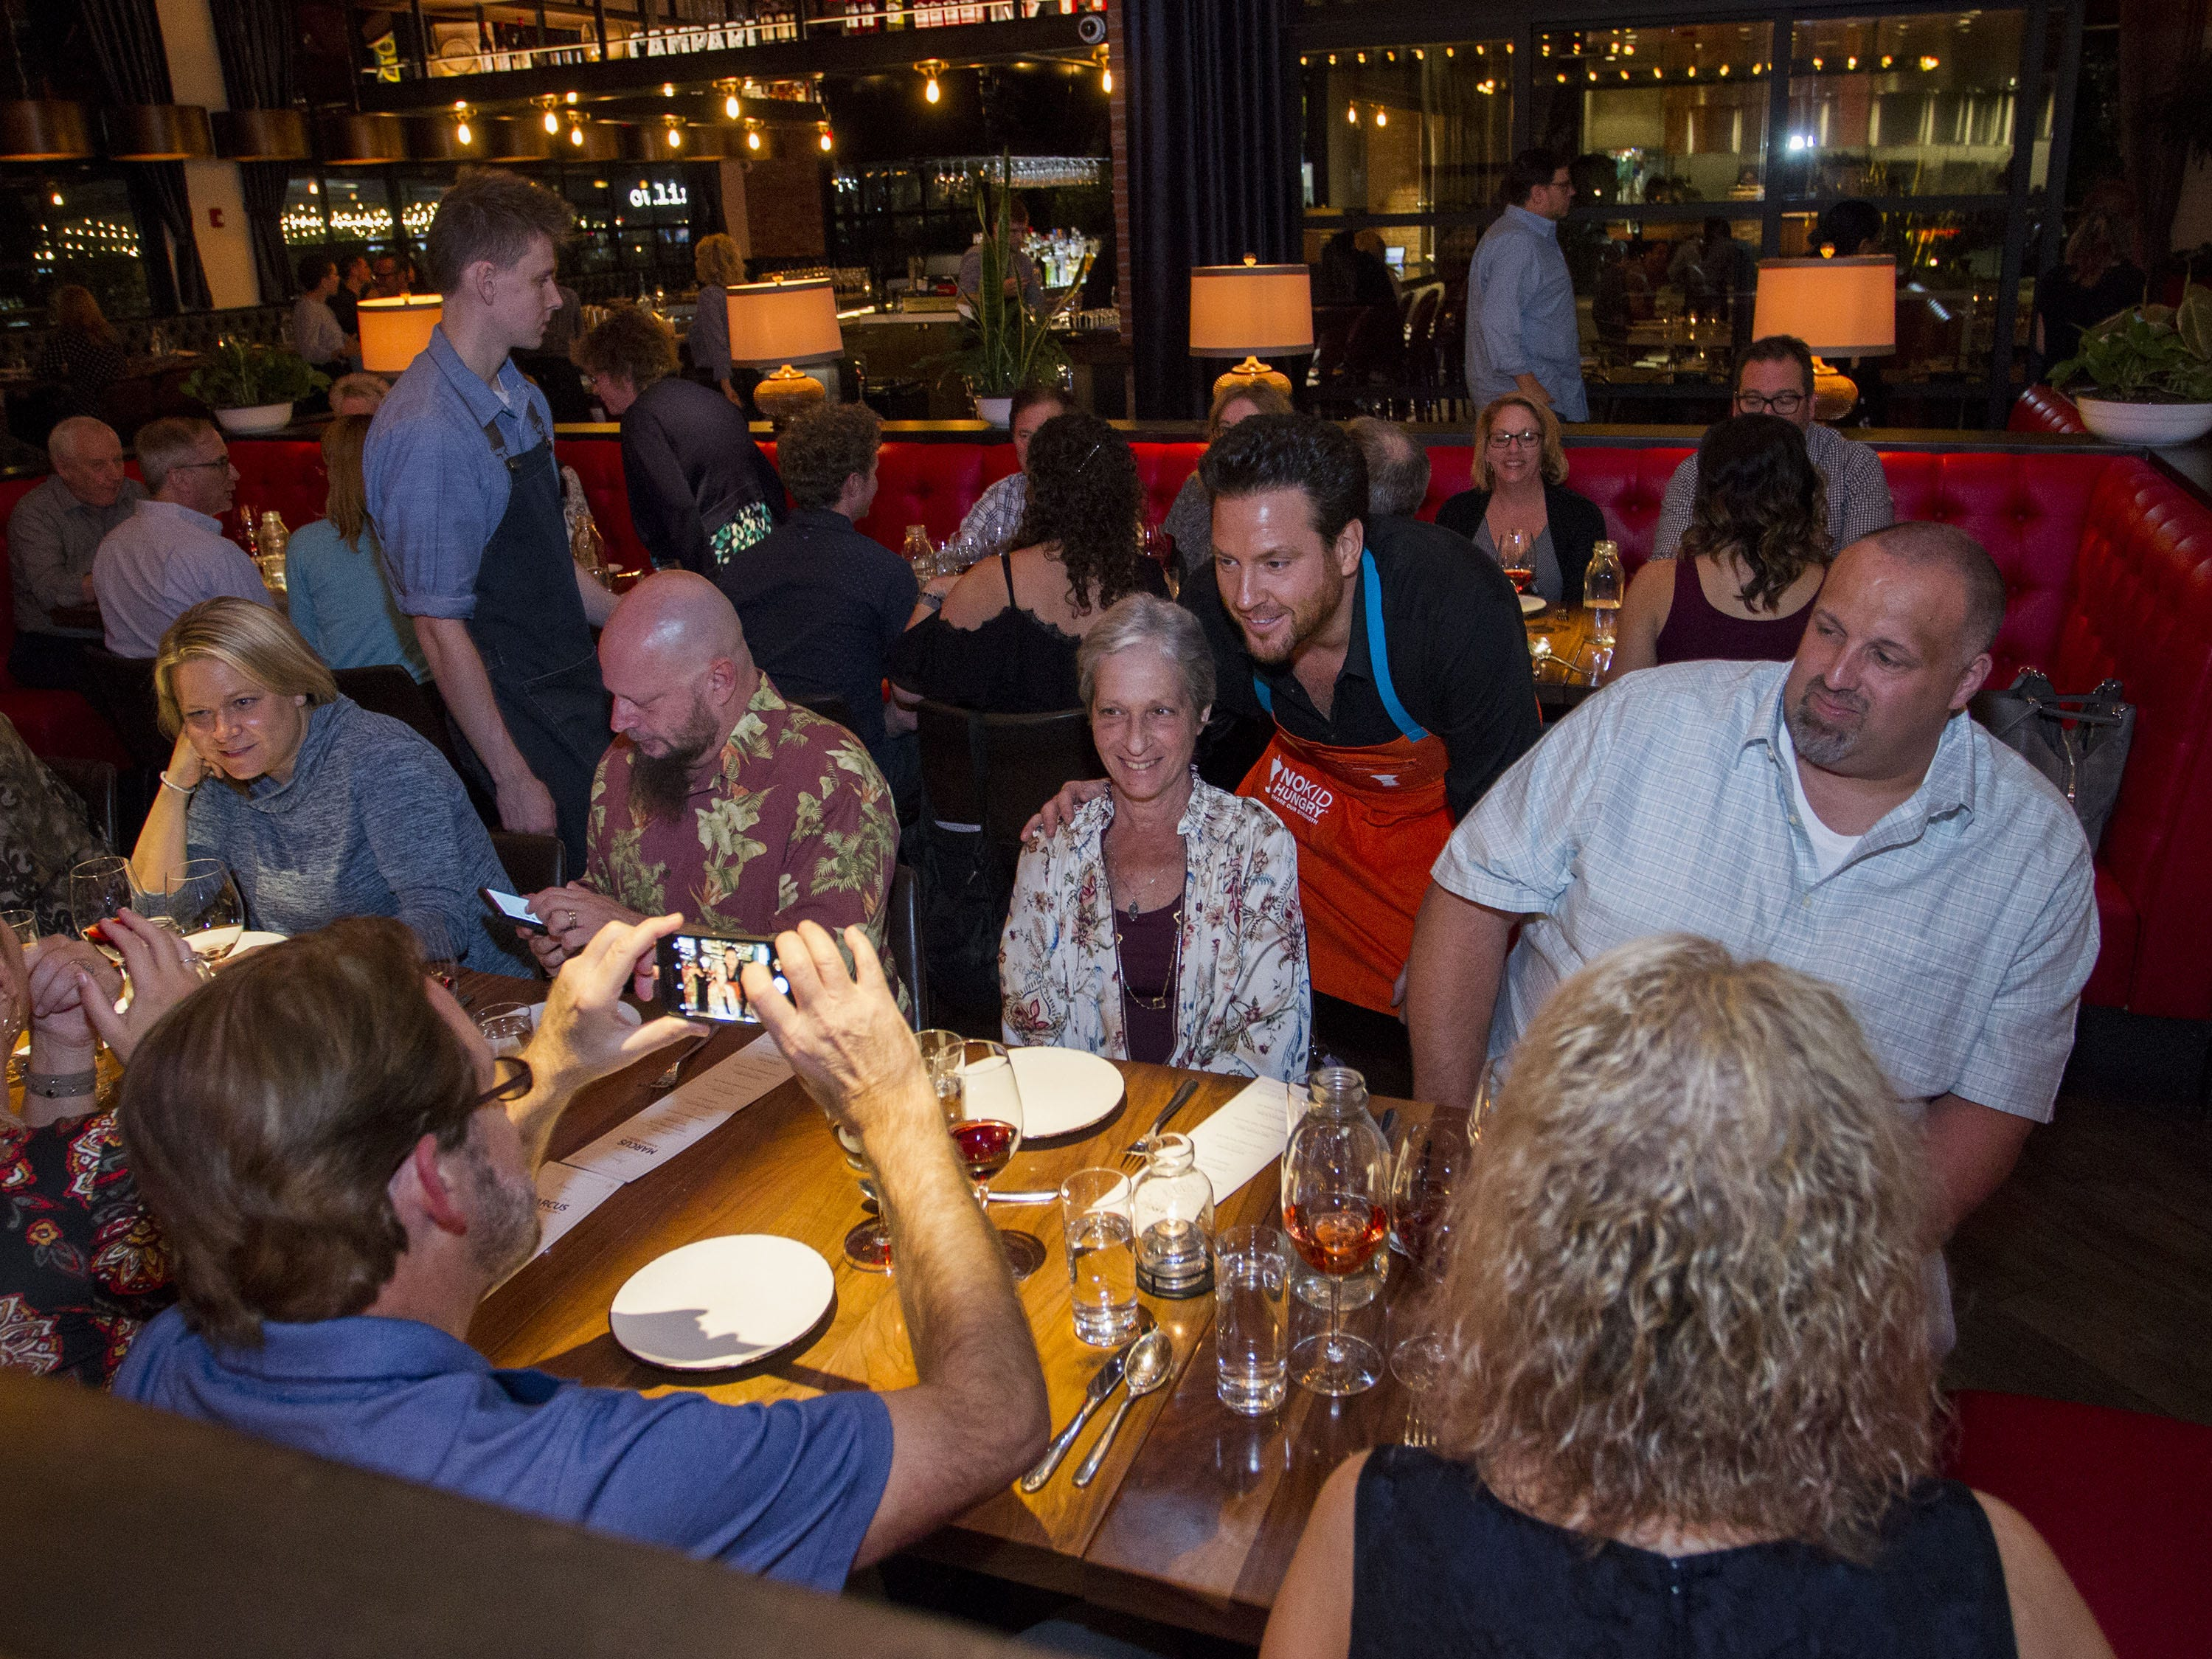 Chef Scott Conant poses with dinner guests during the exclusive kickoff dining event at Mora Italian for azcentral Wine & Food Experience.